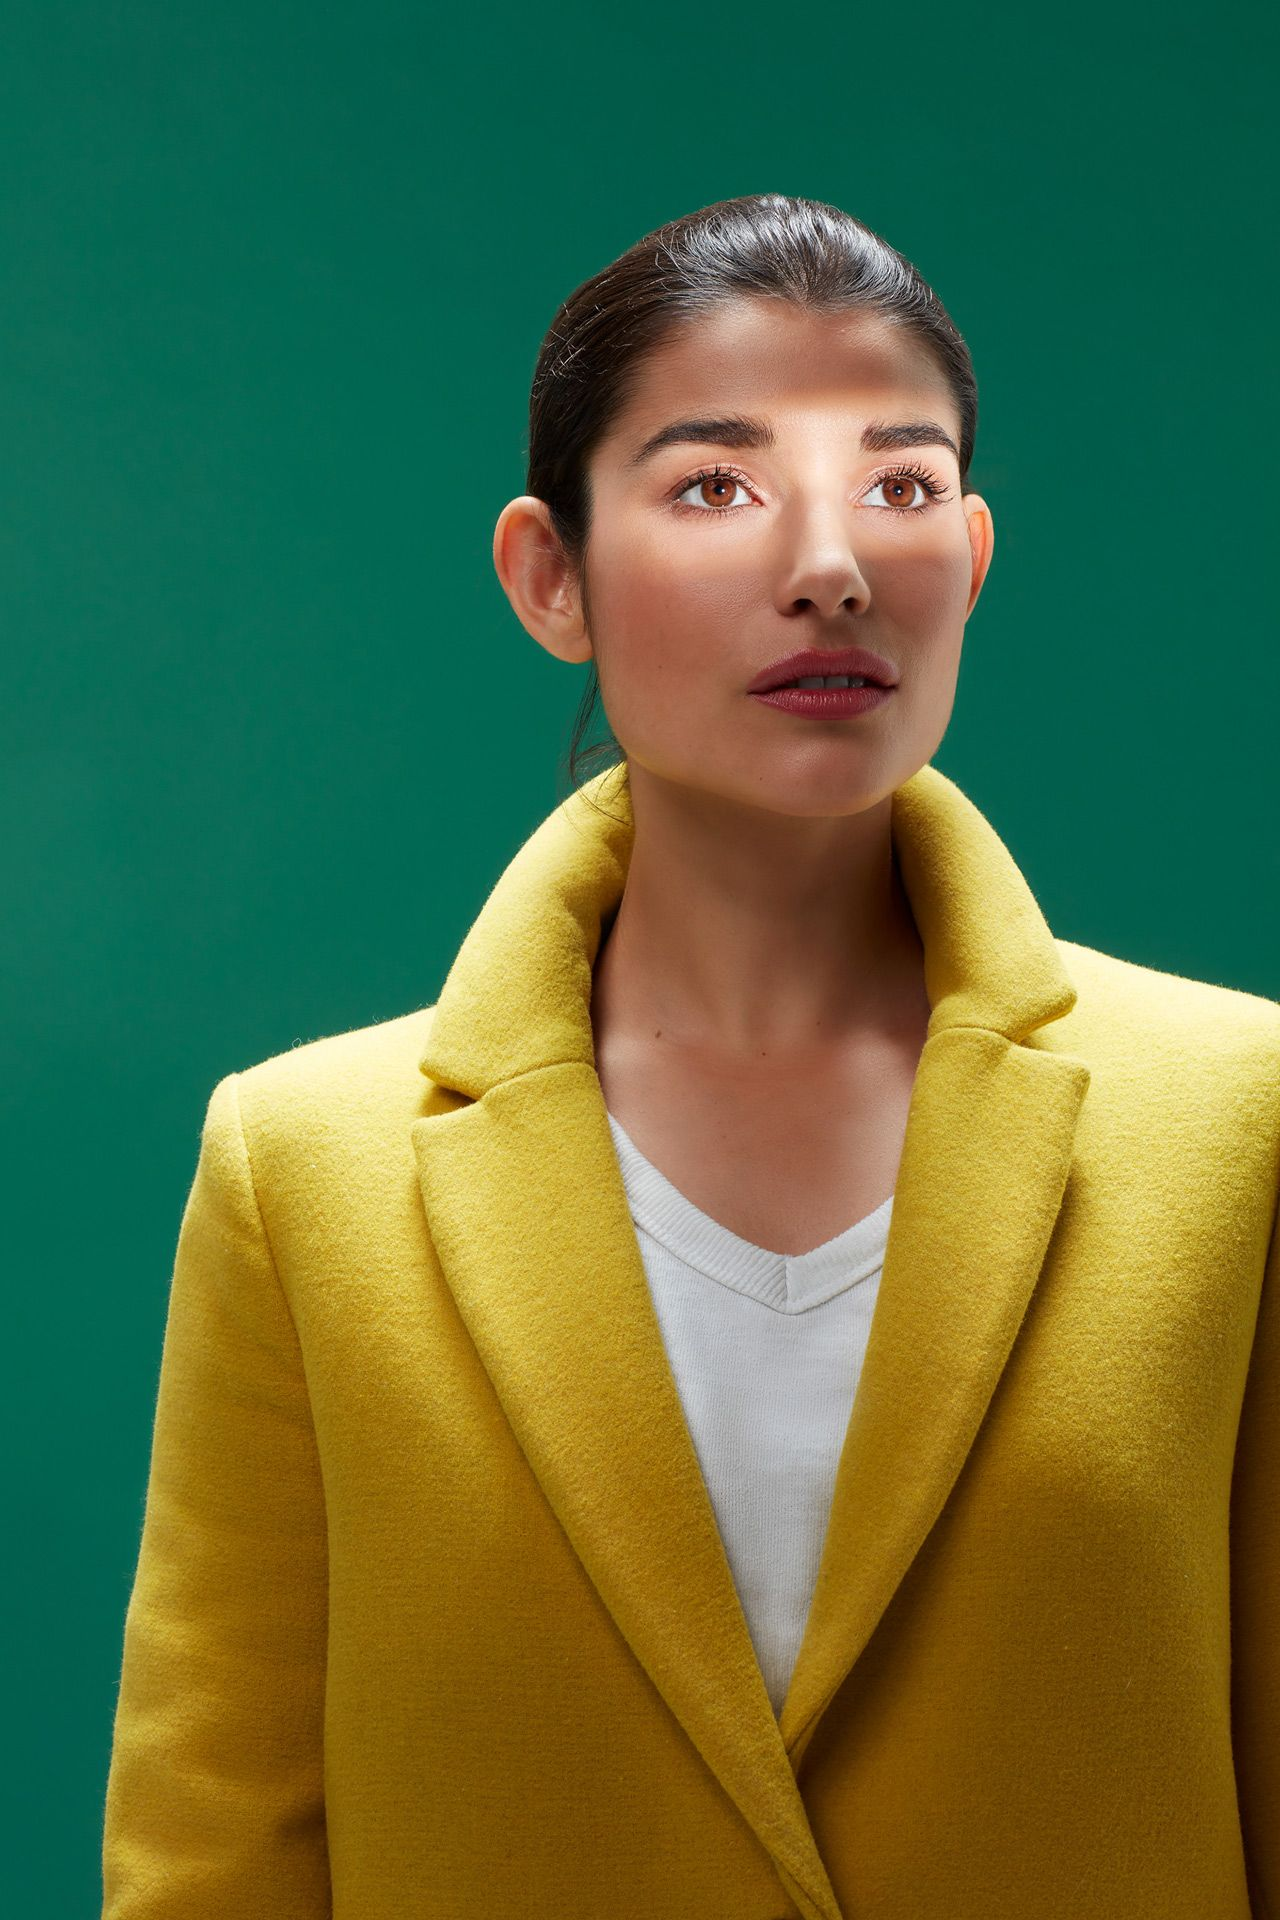 portrait of woman looking away dark hair light on her face wearing yellow coat on green background by Simon Duhamel for creative project Light & Colours